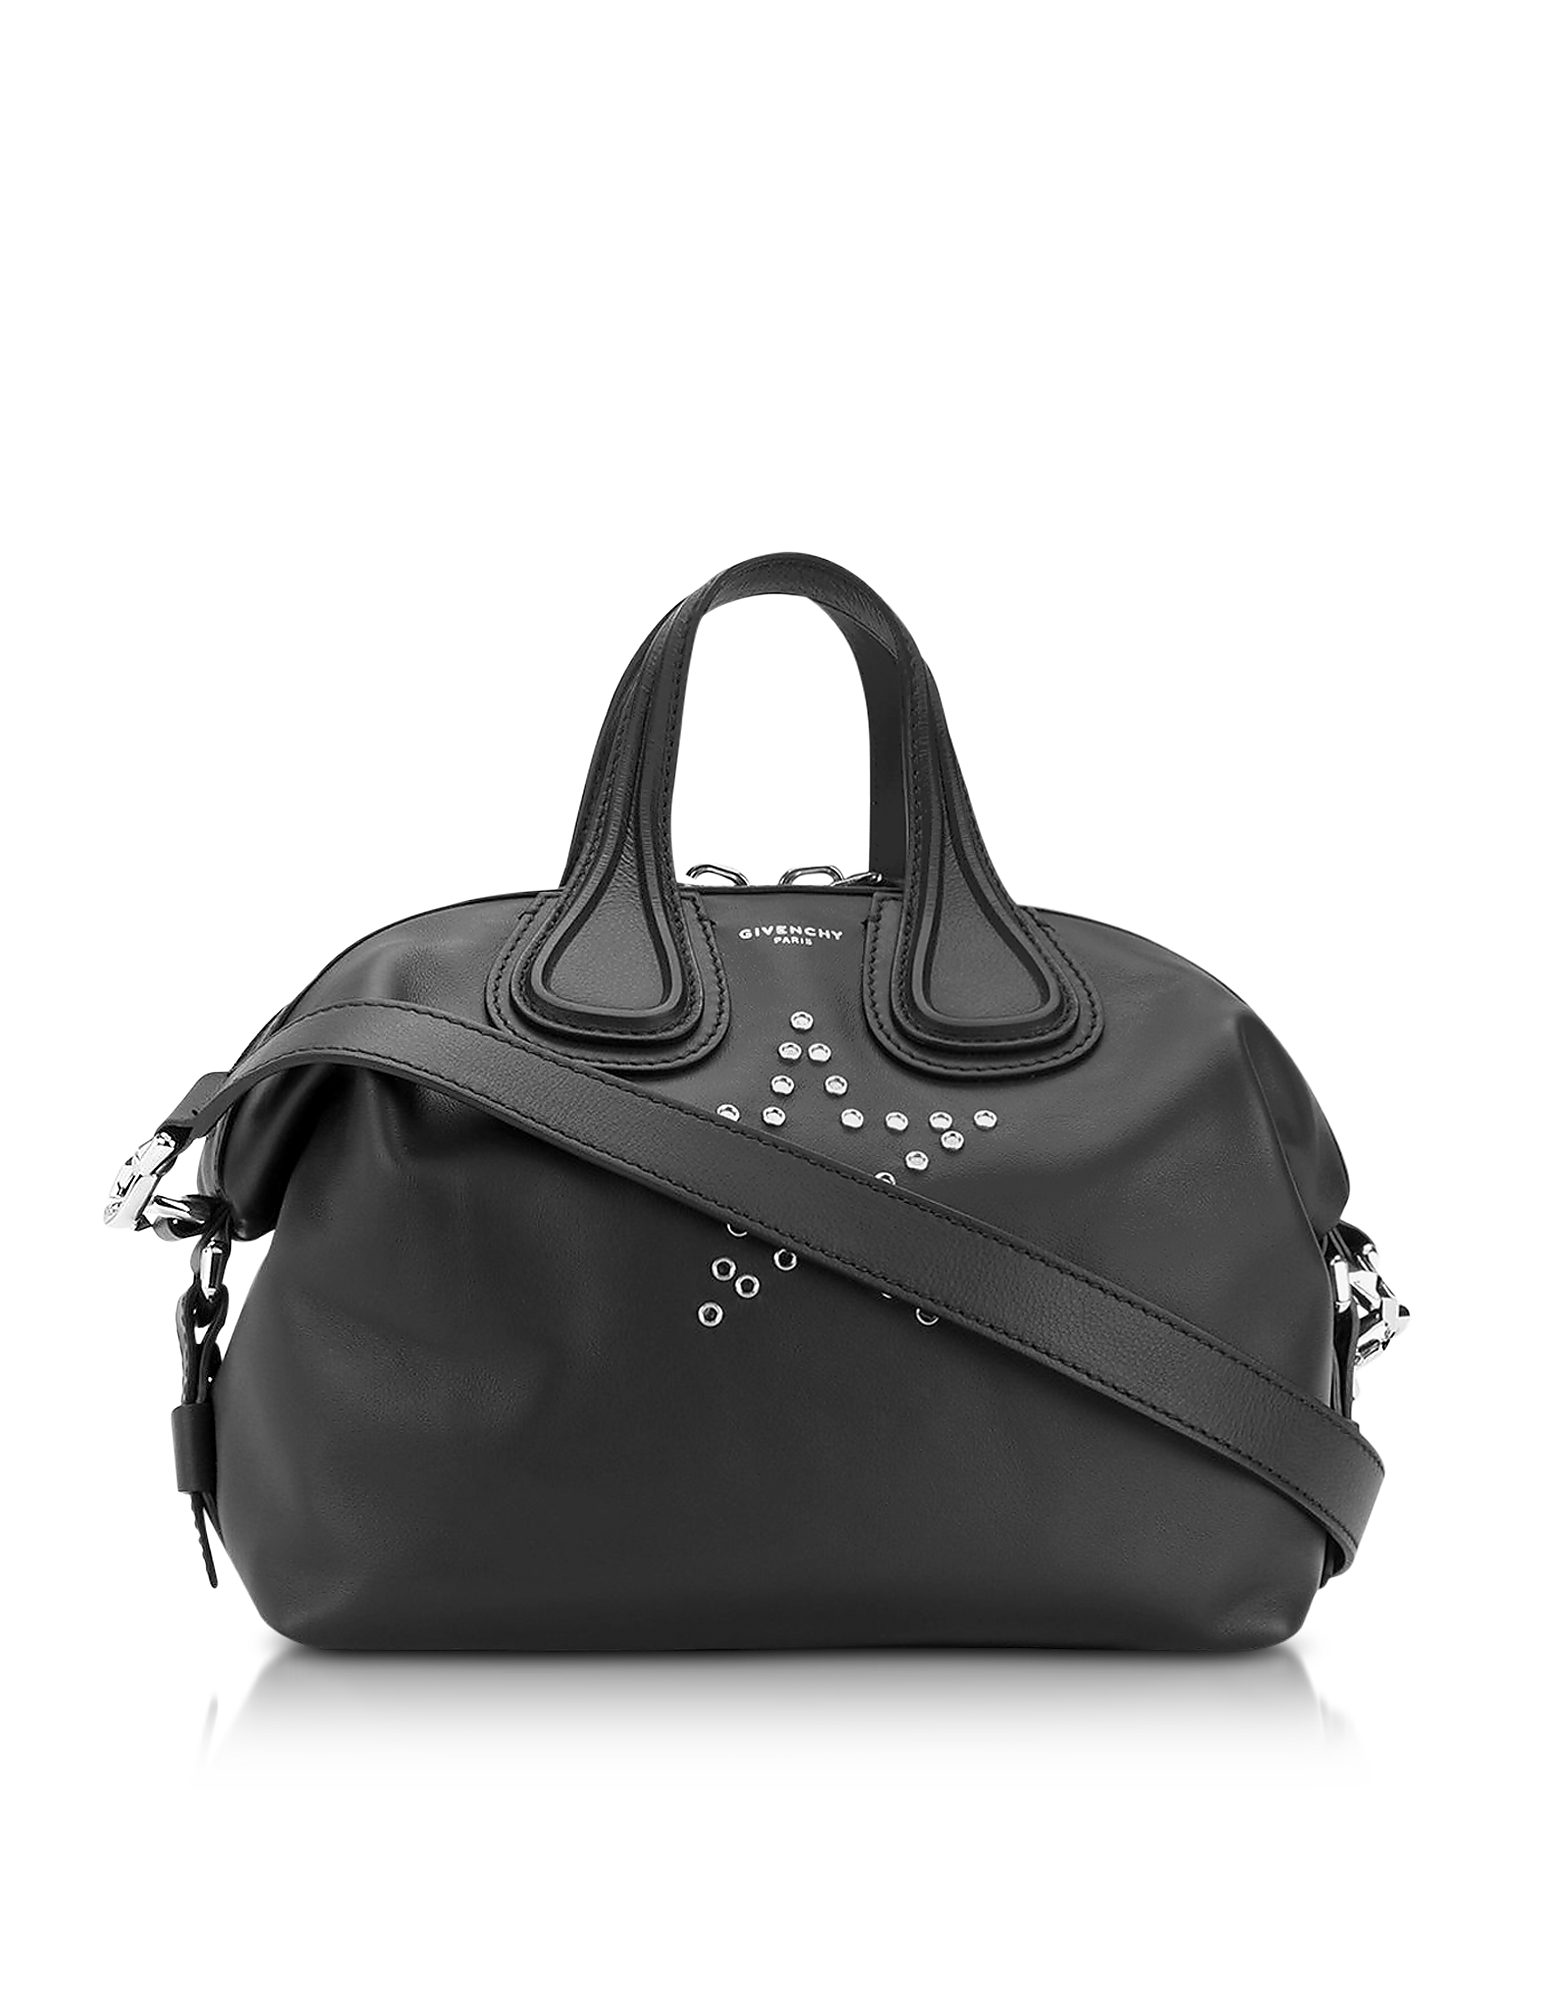 Givenchy Handbags, Nightingale w/Stars Black Leather Satchel Bag